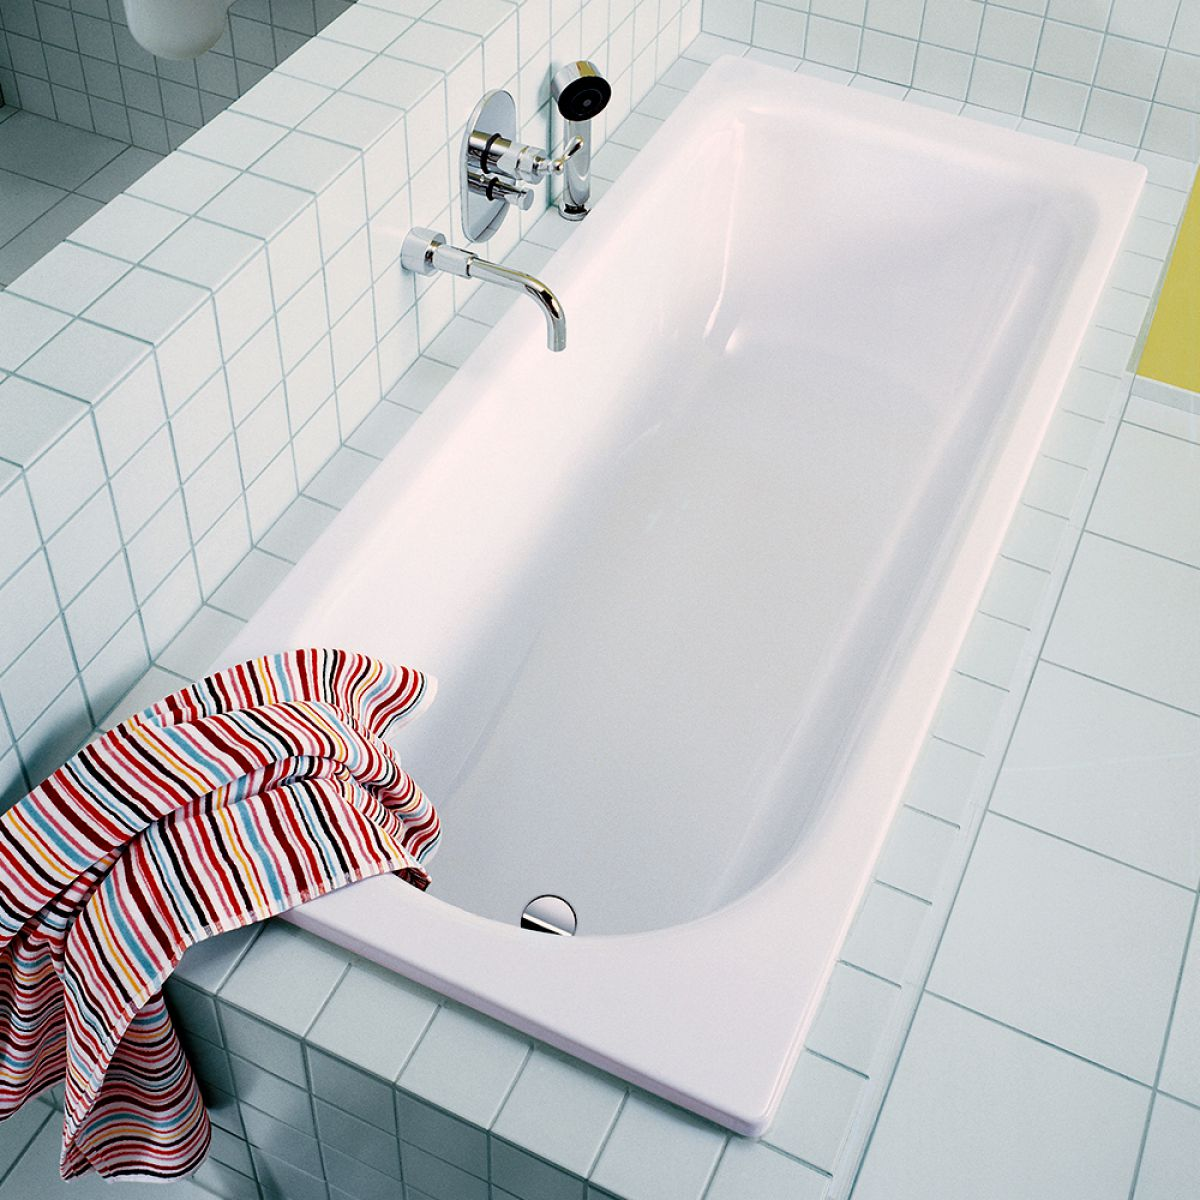 Kaldewei Saniform Plus Eco Steel Bath Uk Bathrooms